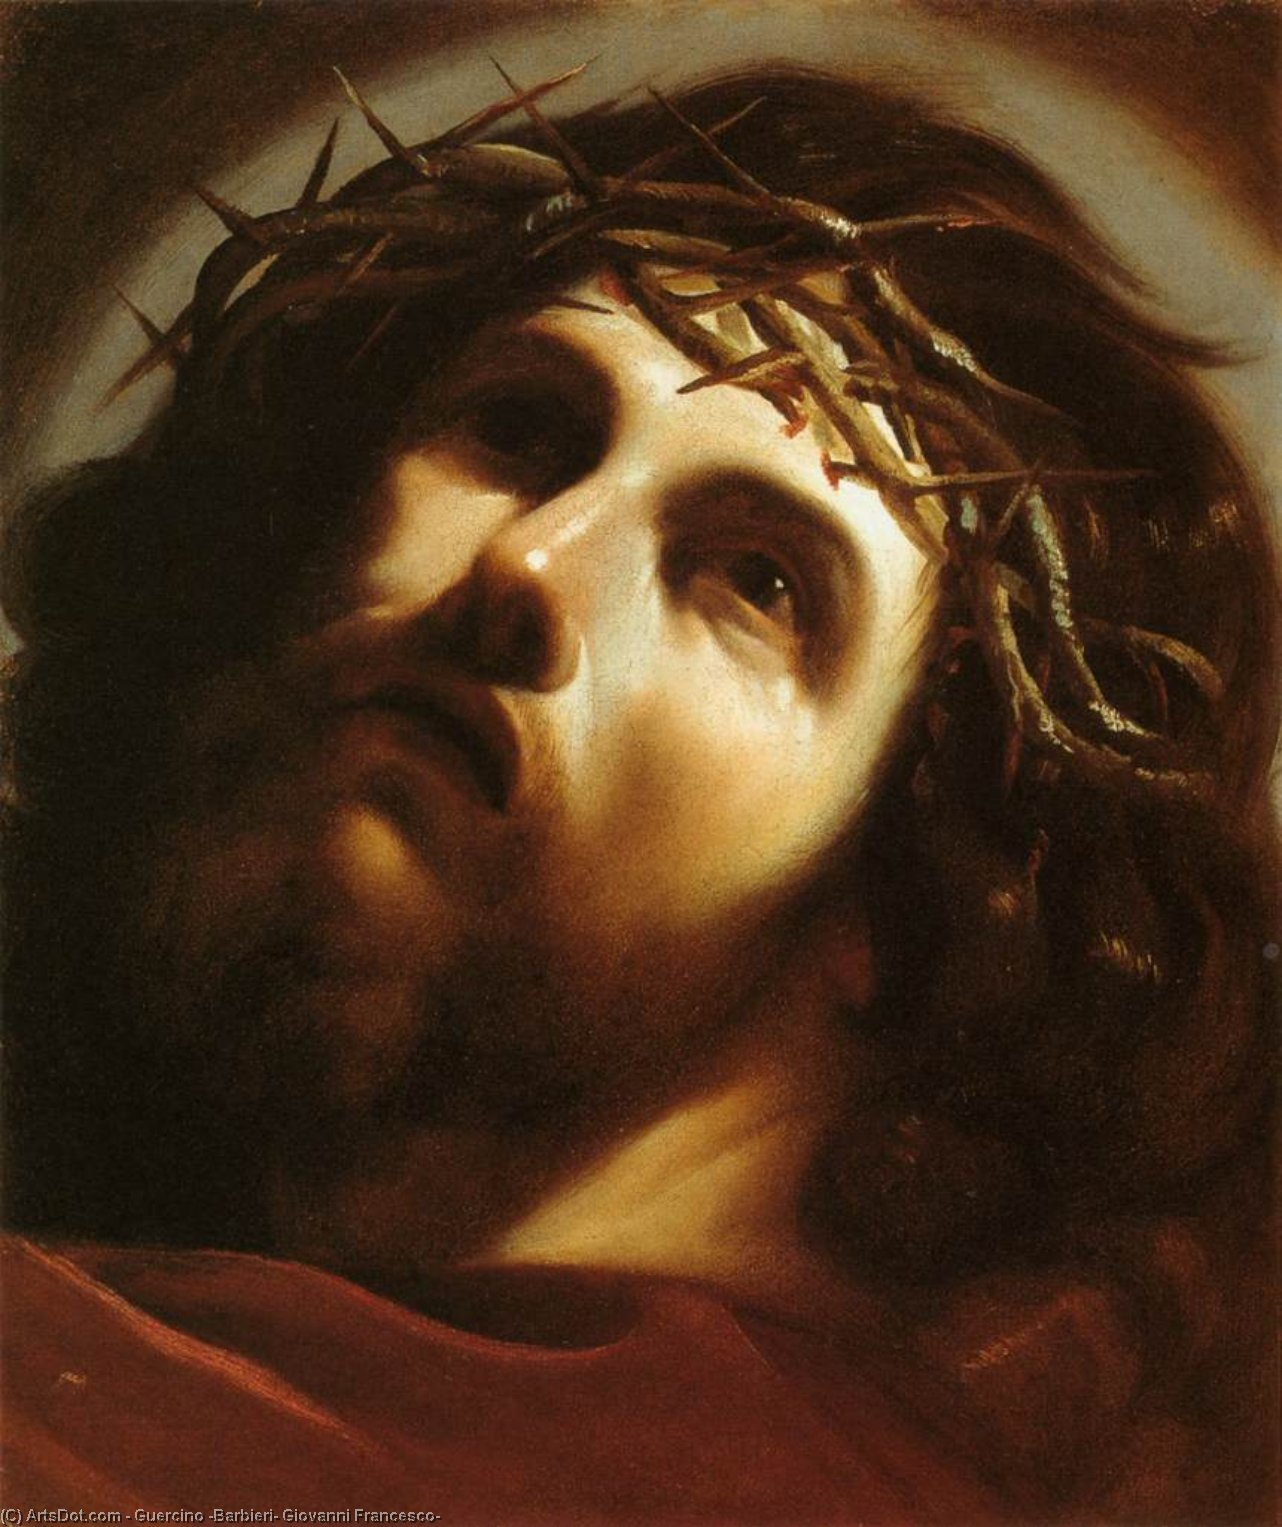 Christ Crowned with Thorns, Oil by Guercino (Barbieri, Giovanni Francesco) (1591-1666, Italy)